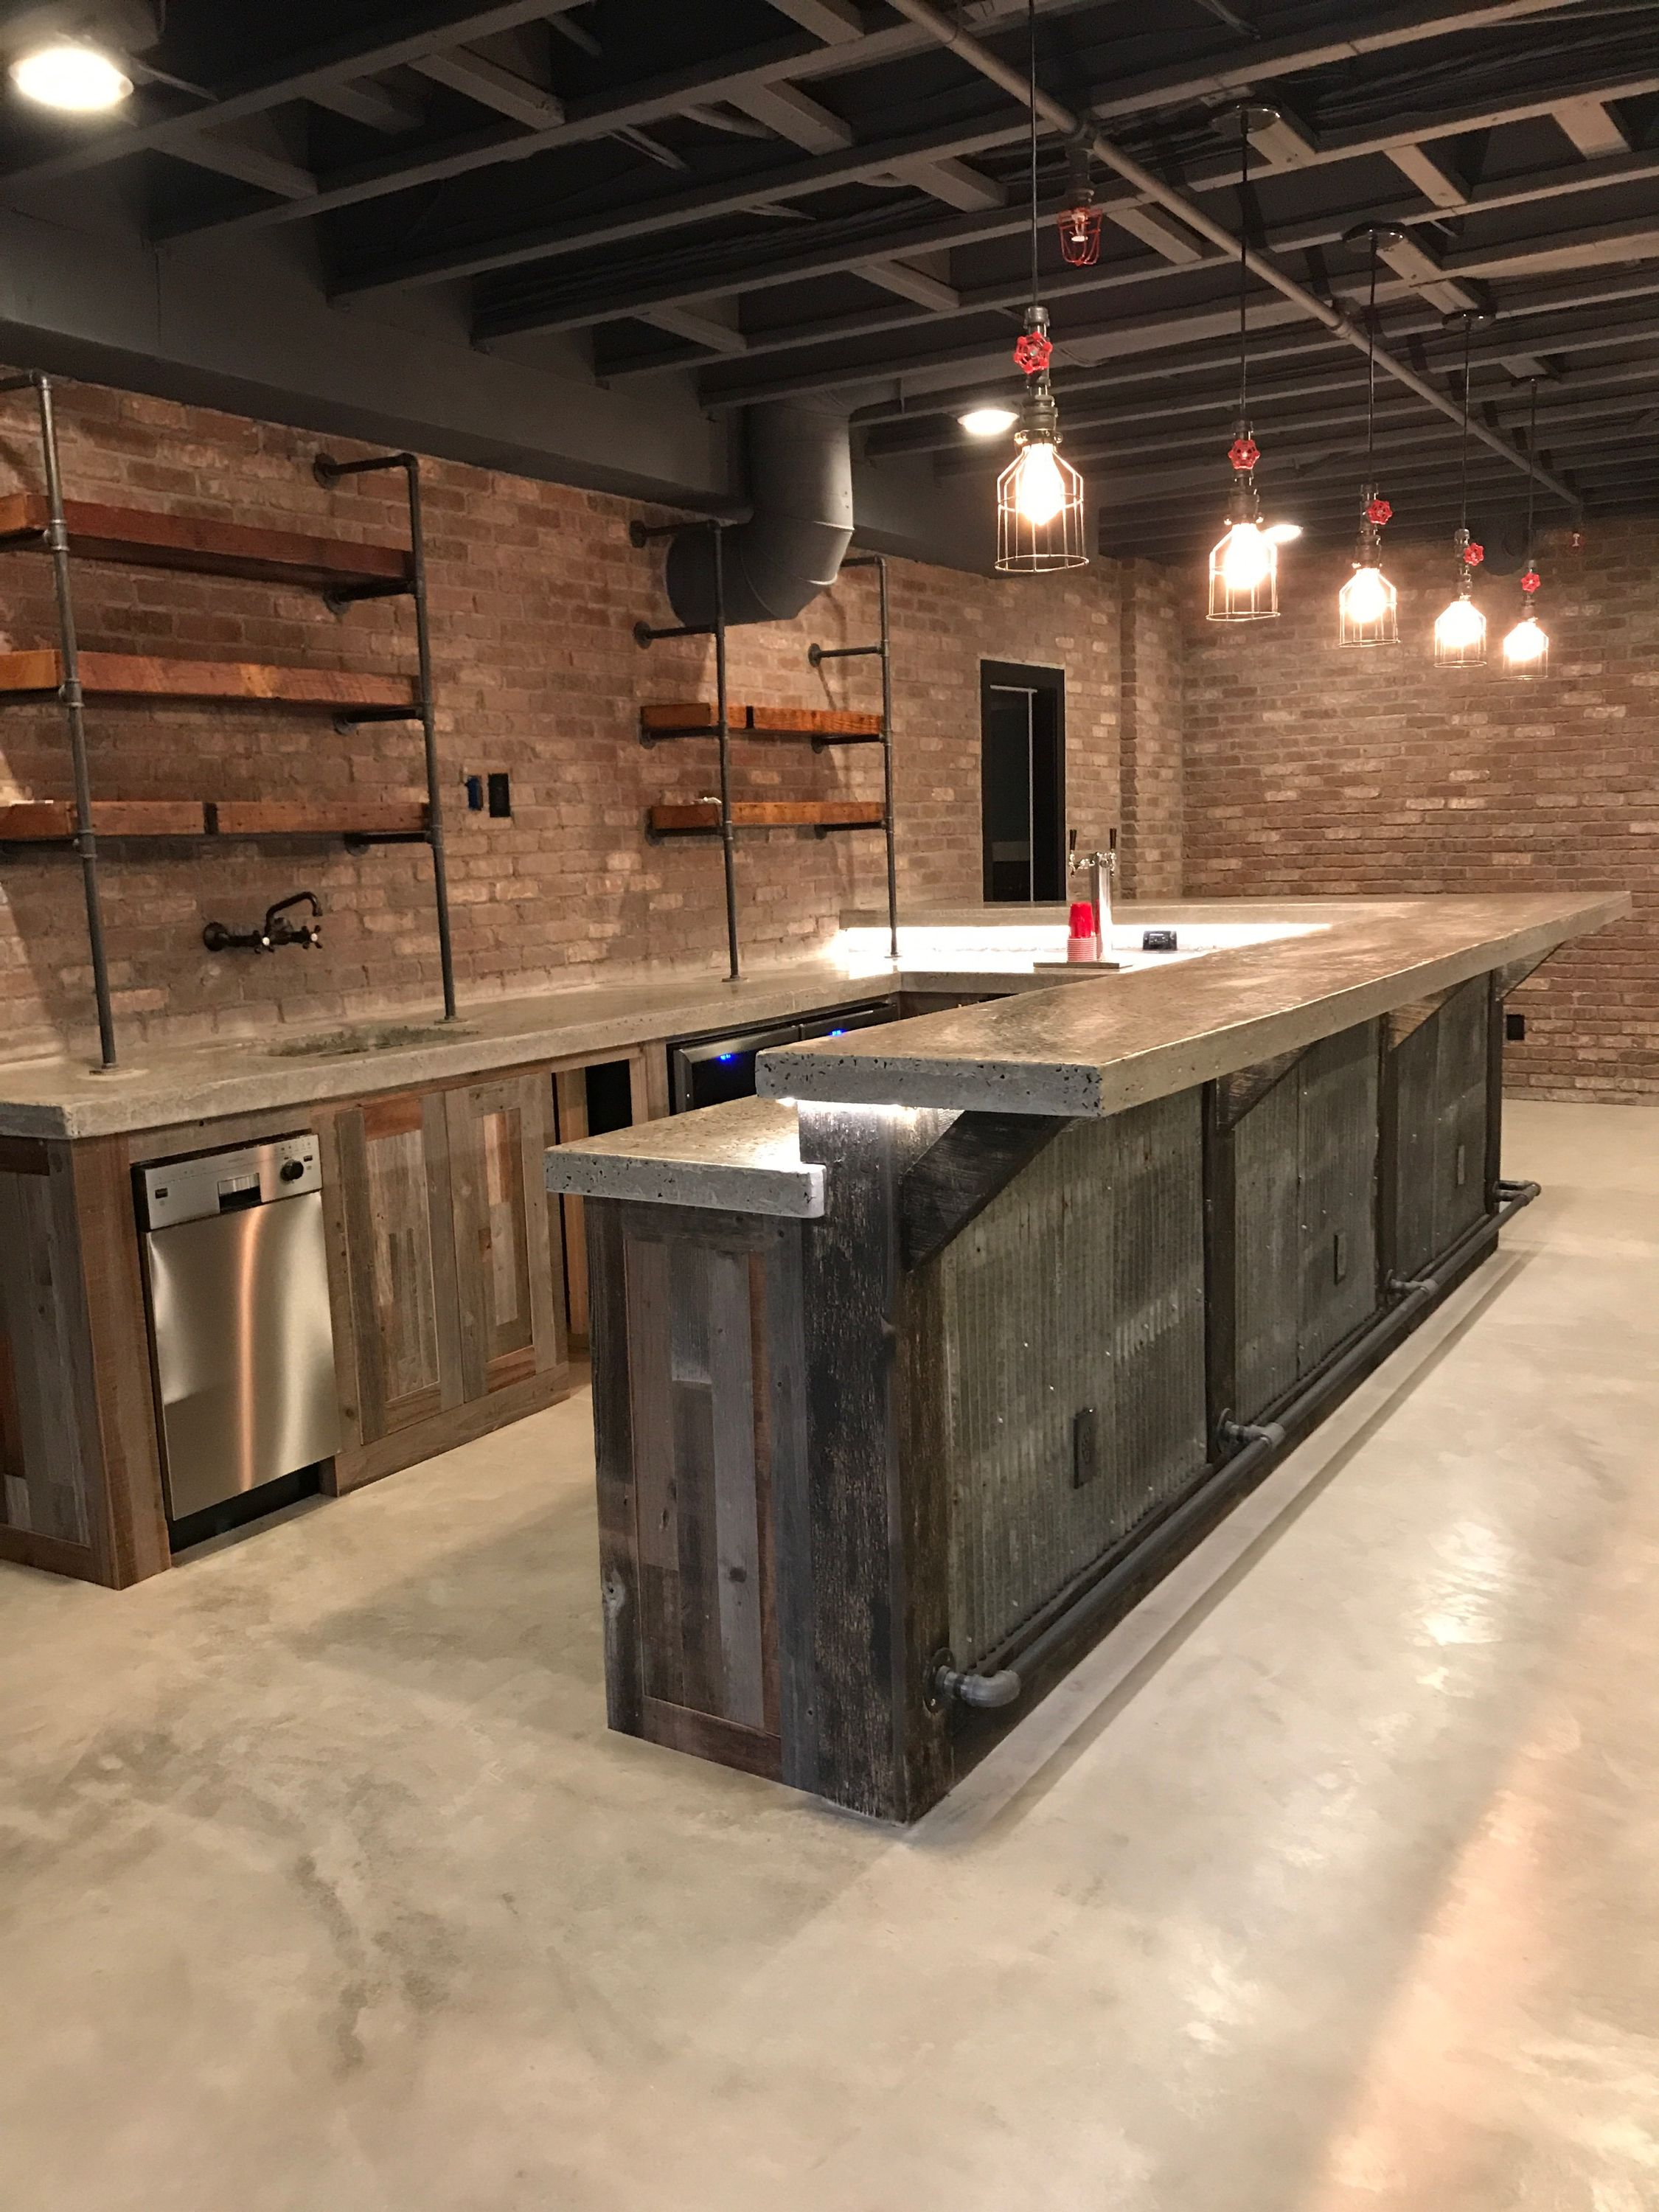 Industrial basement bar | Restaurant ideas | Pinterest | Partyraum ...